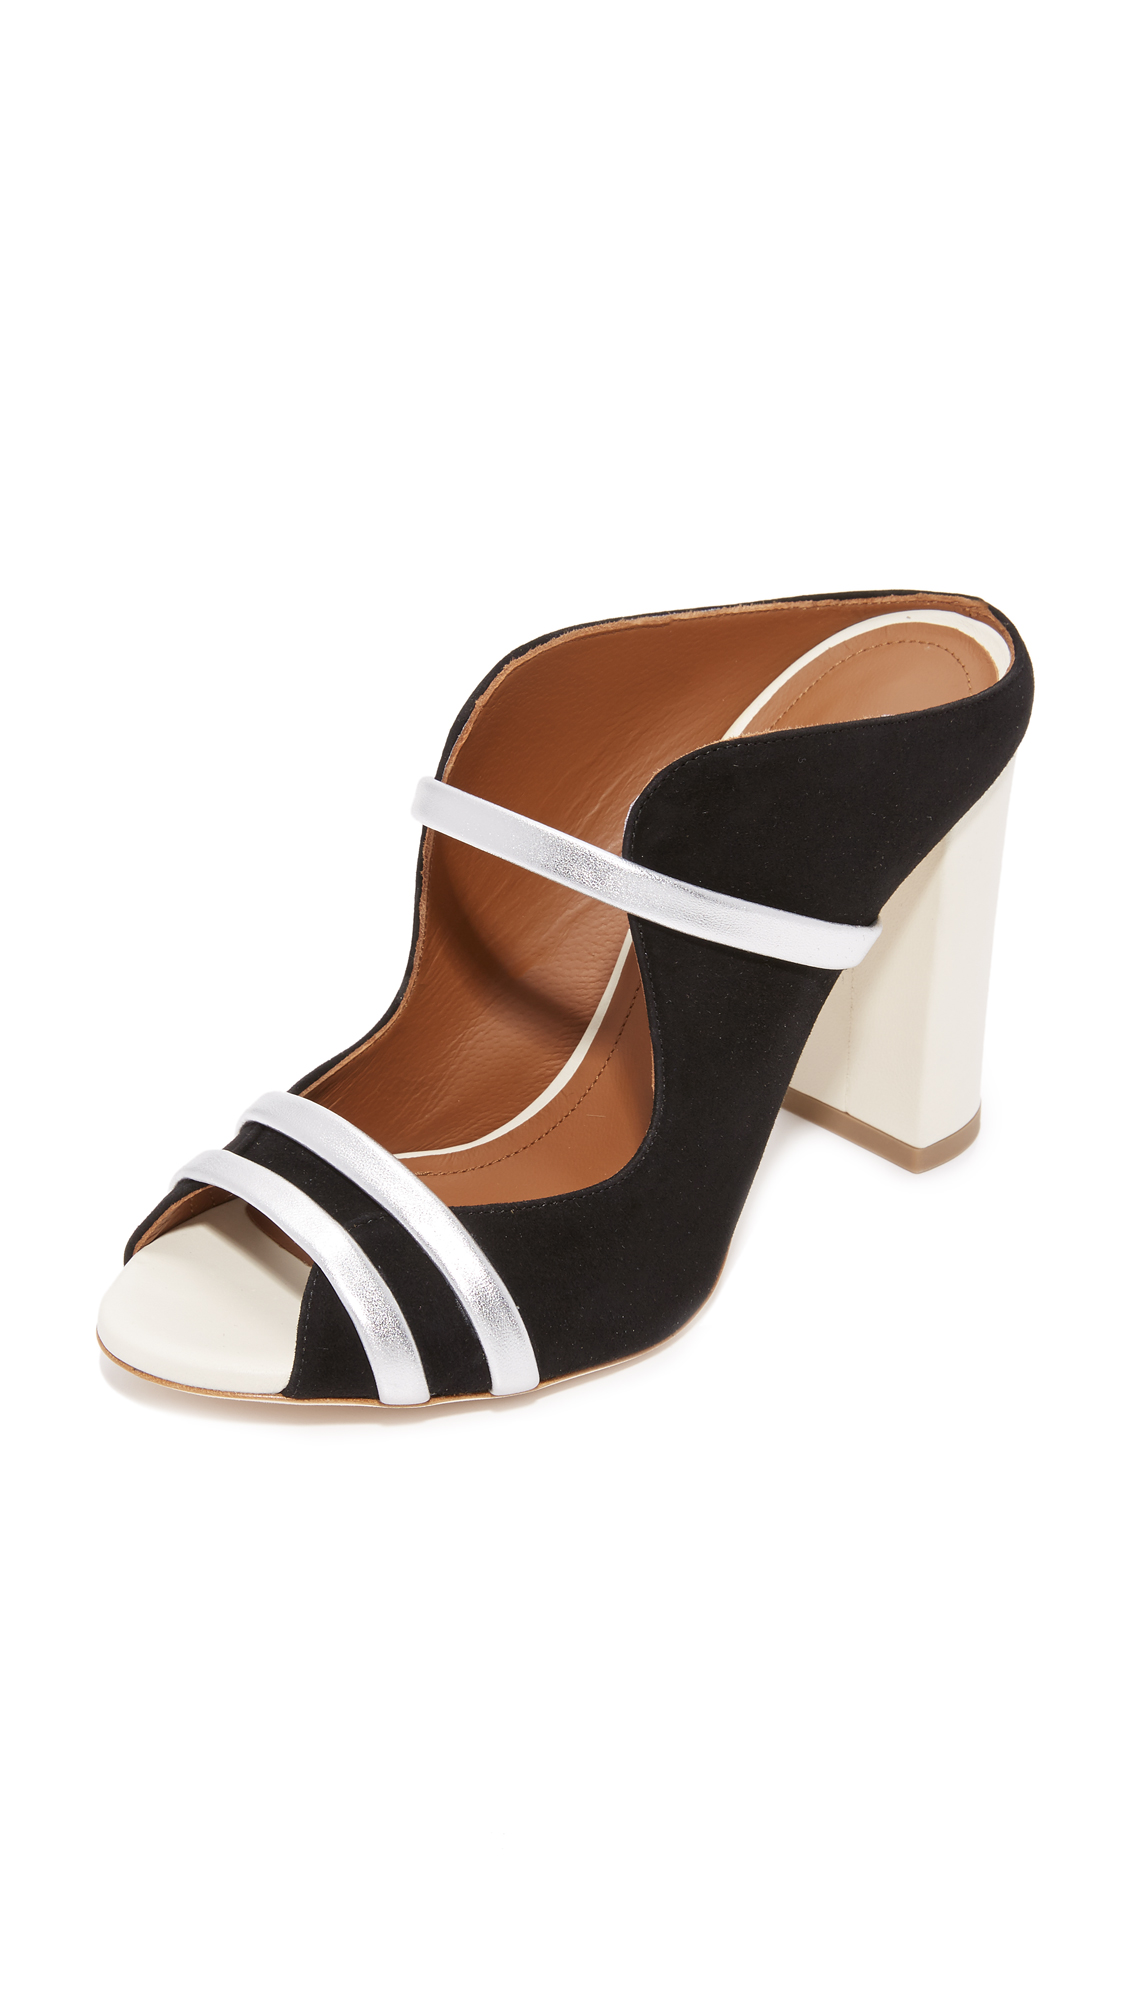 Malone Souliers Maureen Sandals - Black/White/Silver